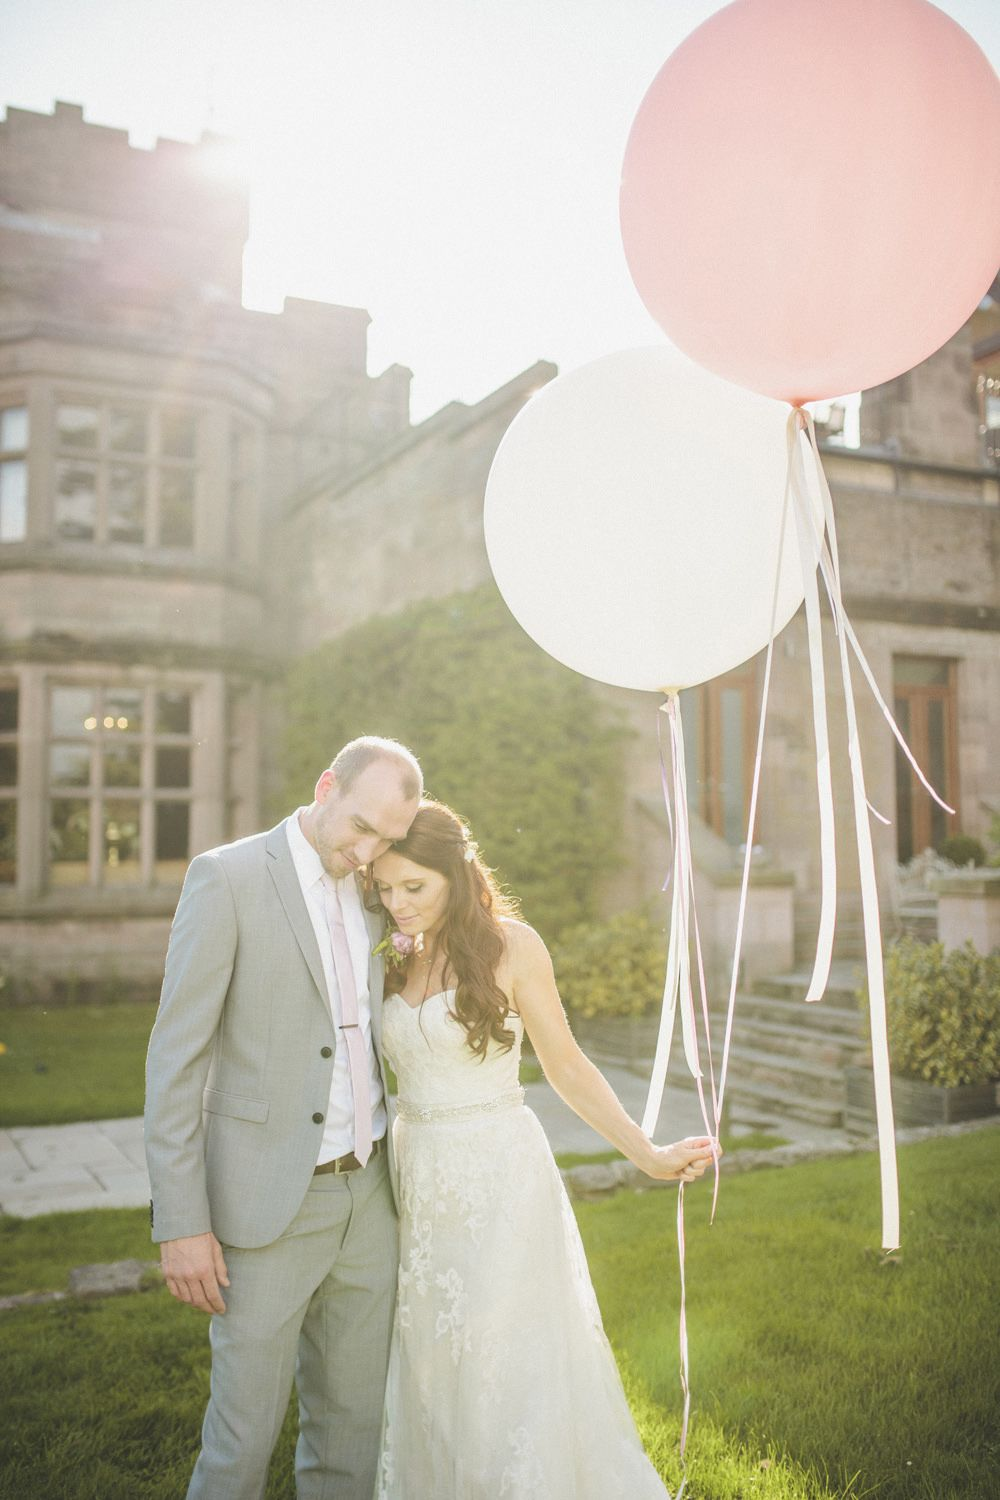 Classic Wedding At Ellingham Hall In Northumberland With Bride Madeline Gardner Dress And Bridesmaids Different Pastel Coloured Dresses Groom